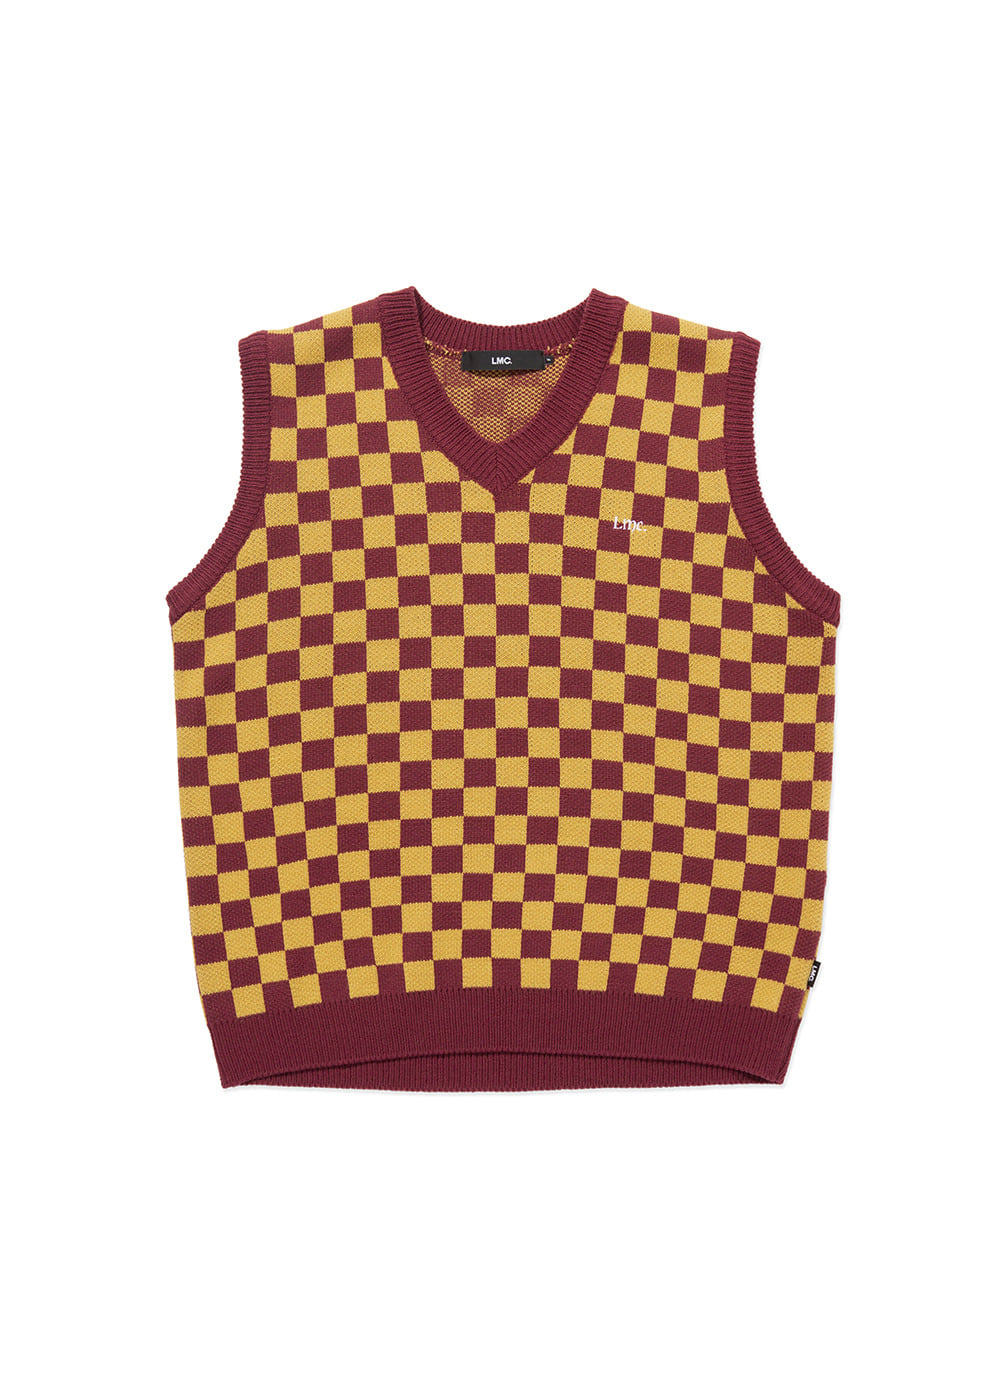 LMC CHECKERBOARD KNIT VEST brown/burgundy